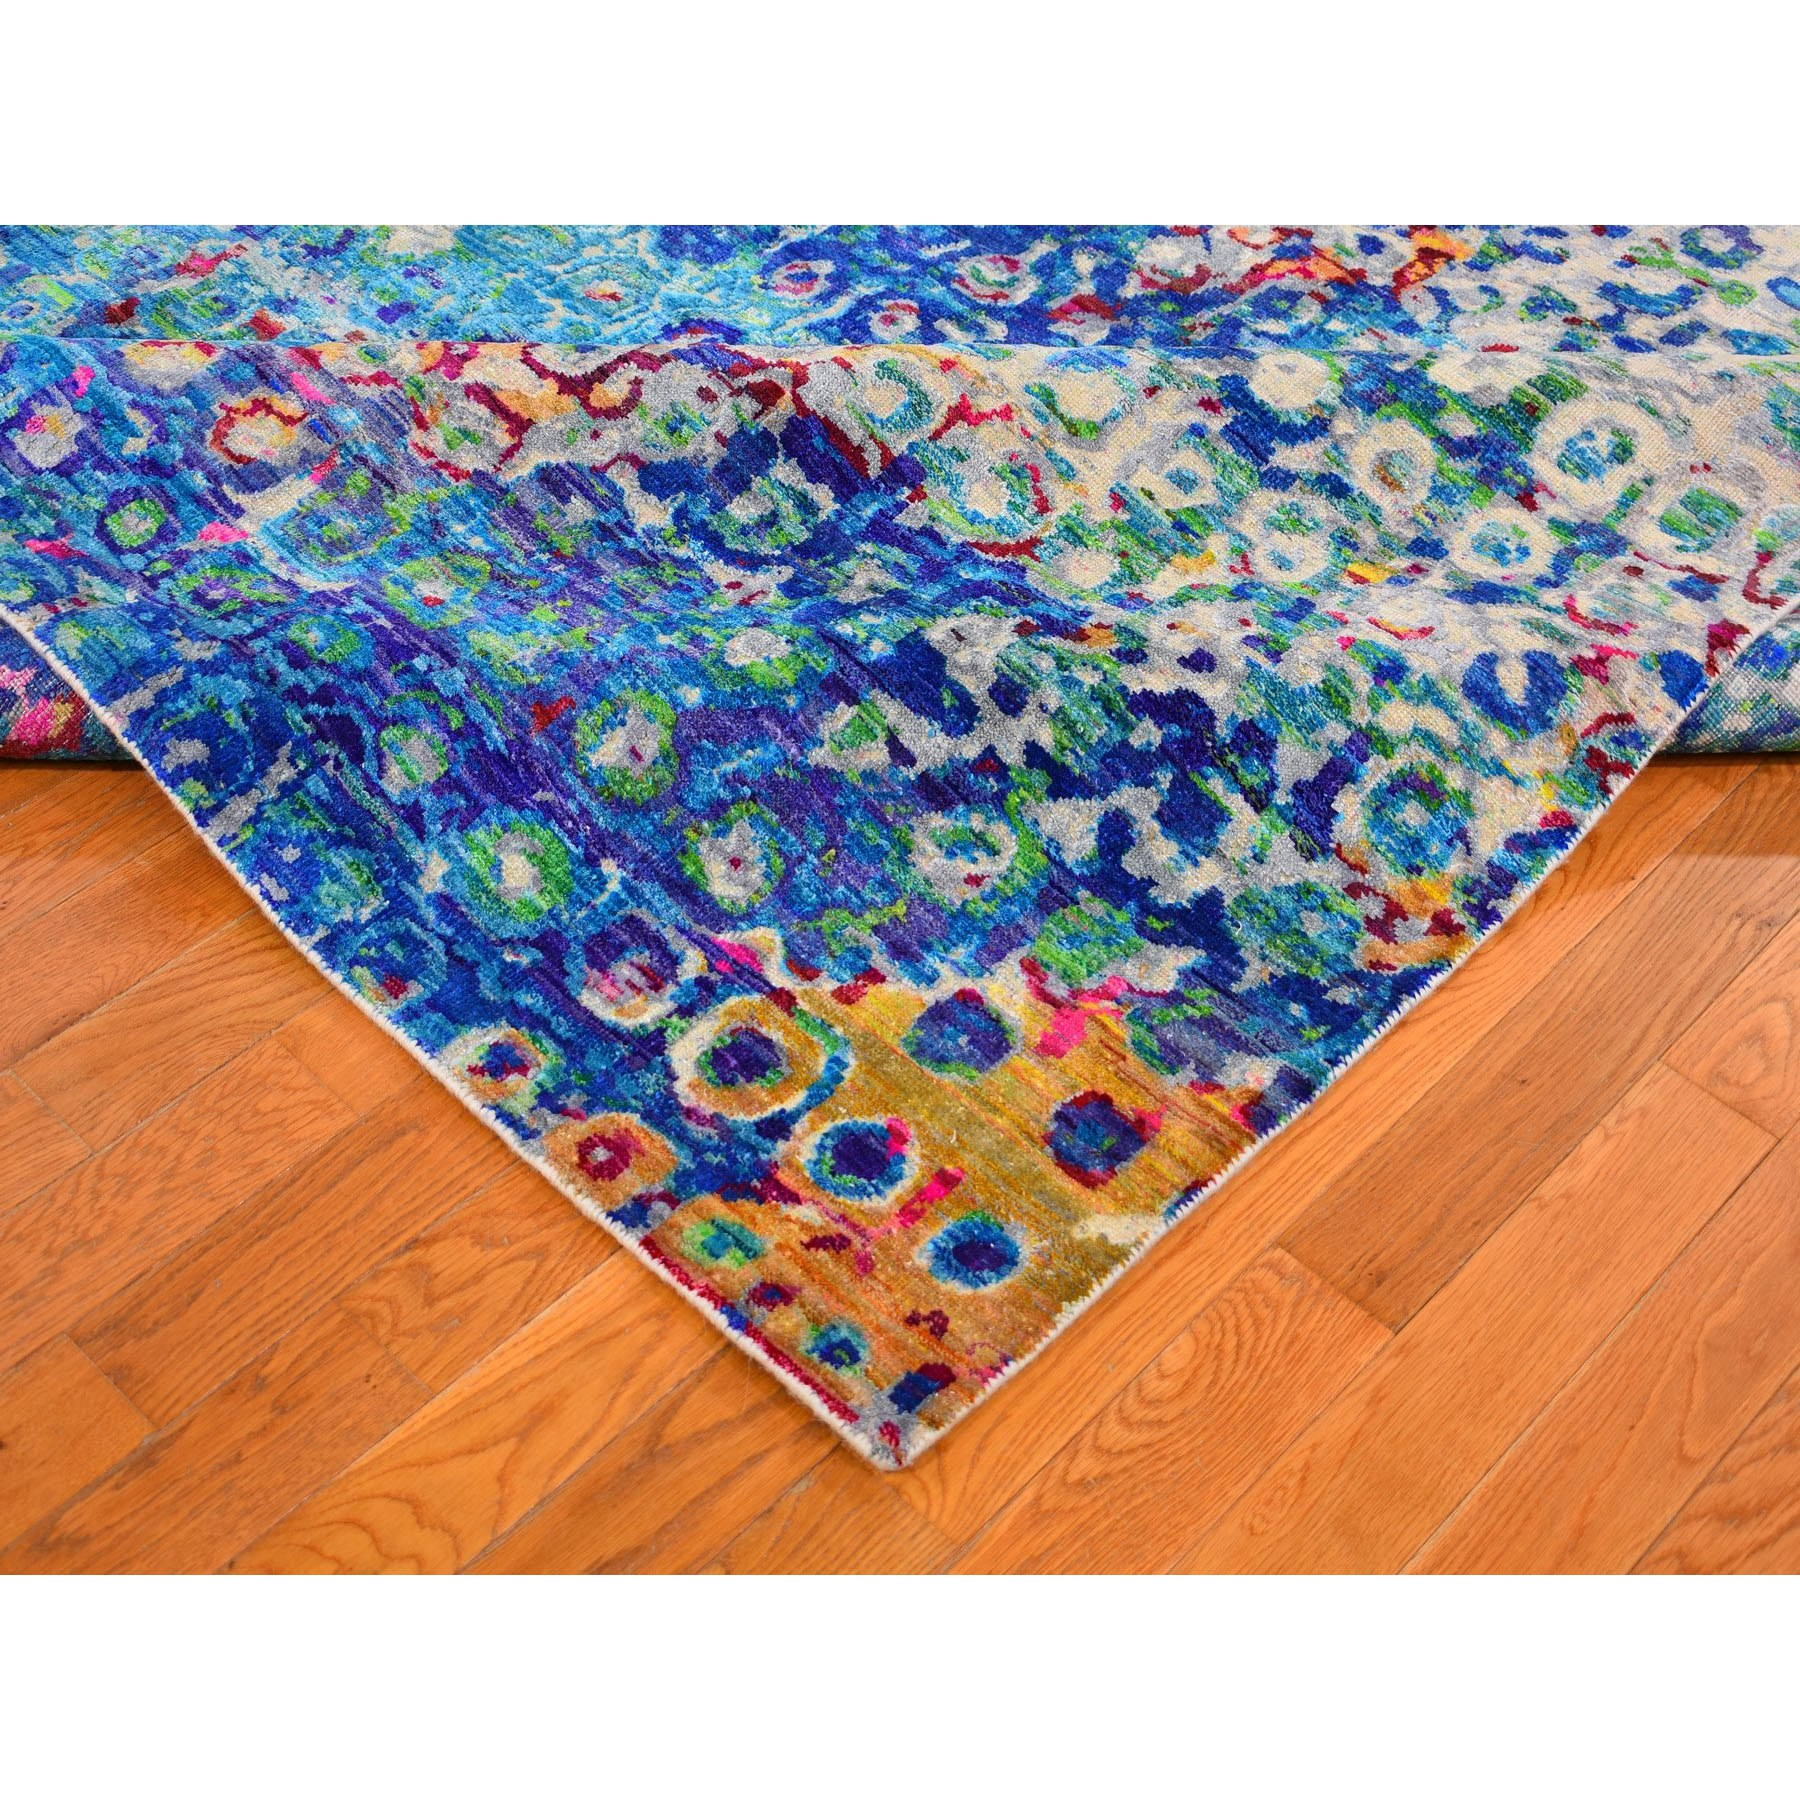 9-x12- THE PEACOCK, Sari Silk Colorful Hand Knotted Oriental Rug